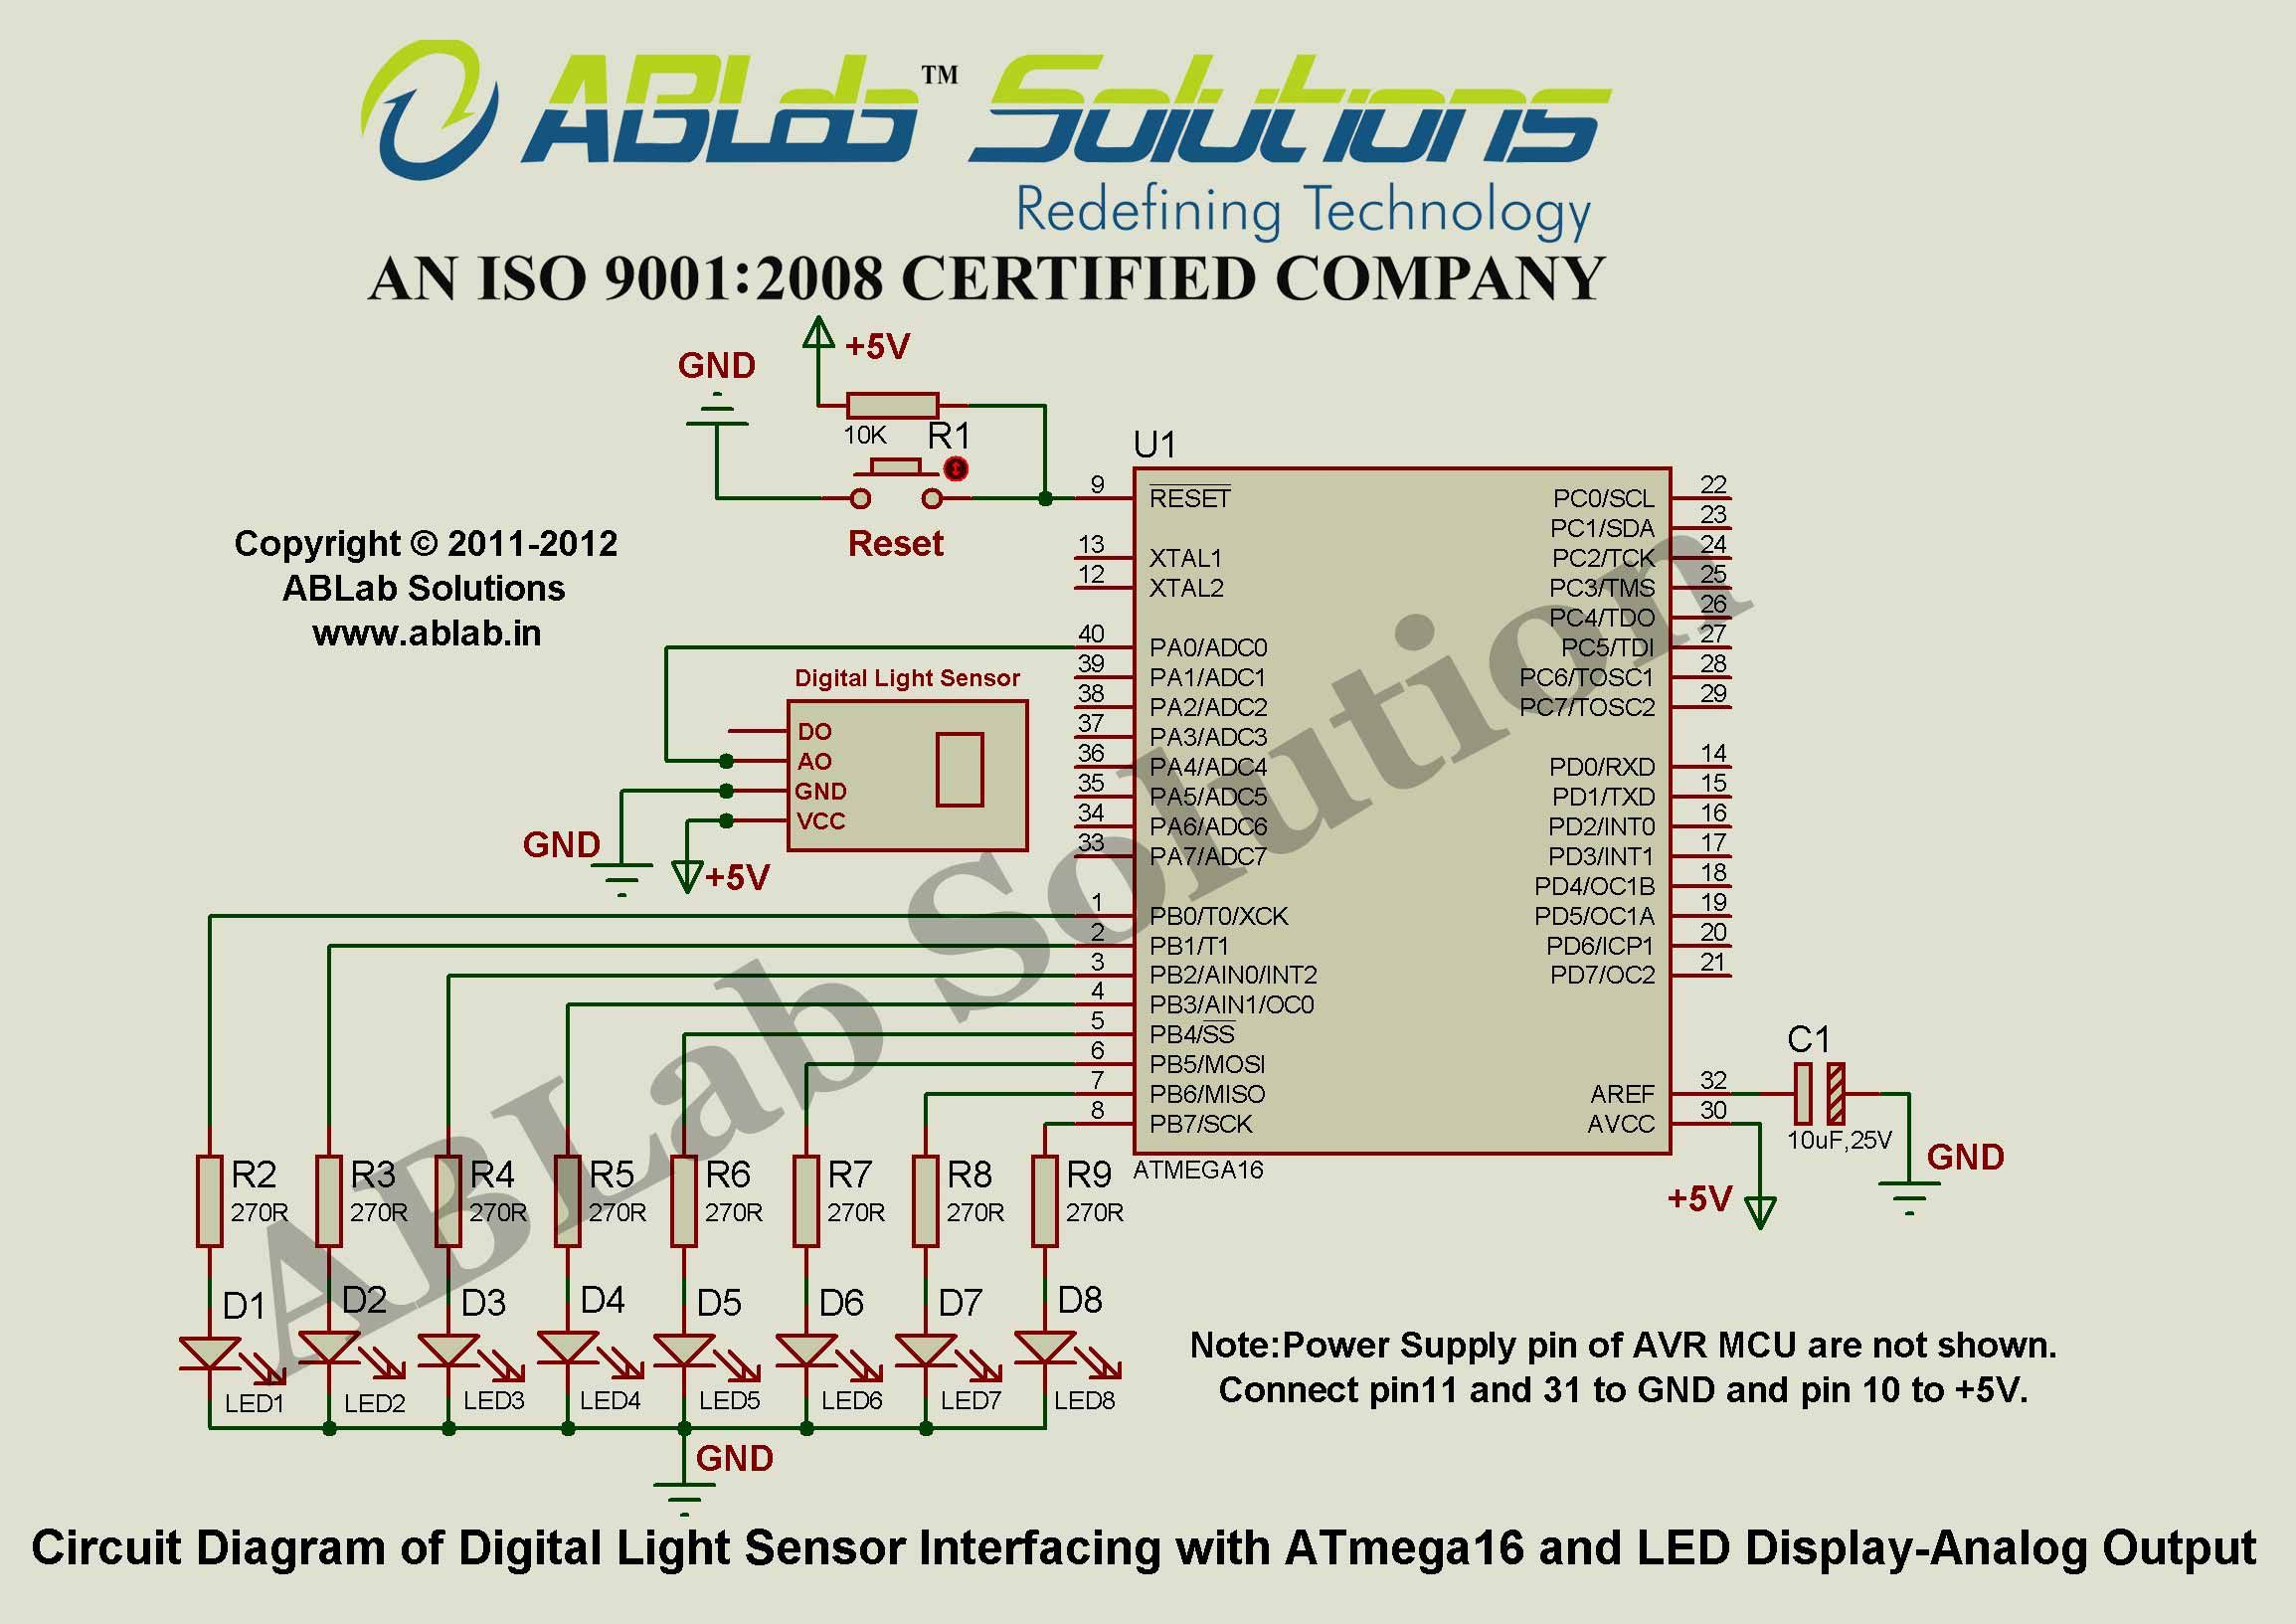 Digital Light Sensor Interfacing With Avr Atmega16 Microcontroller Analoglinefollowercircuitjpg And Led Display Analog Output Circuit Diagram Ablab Solutions